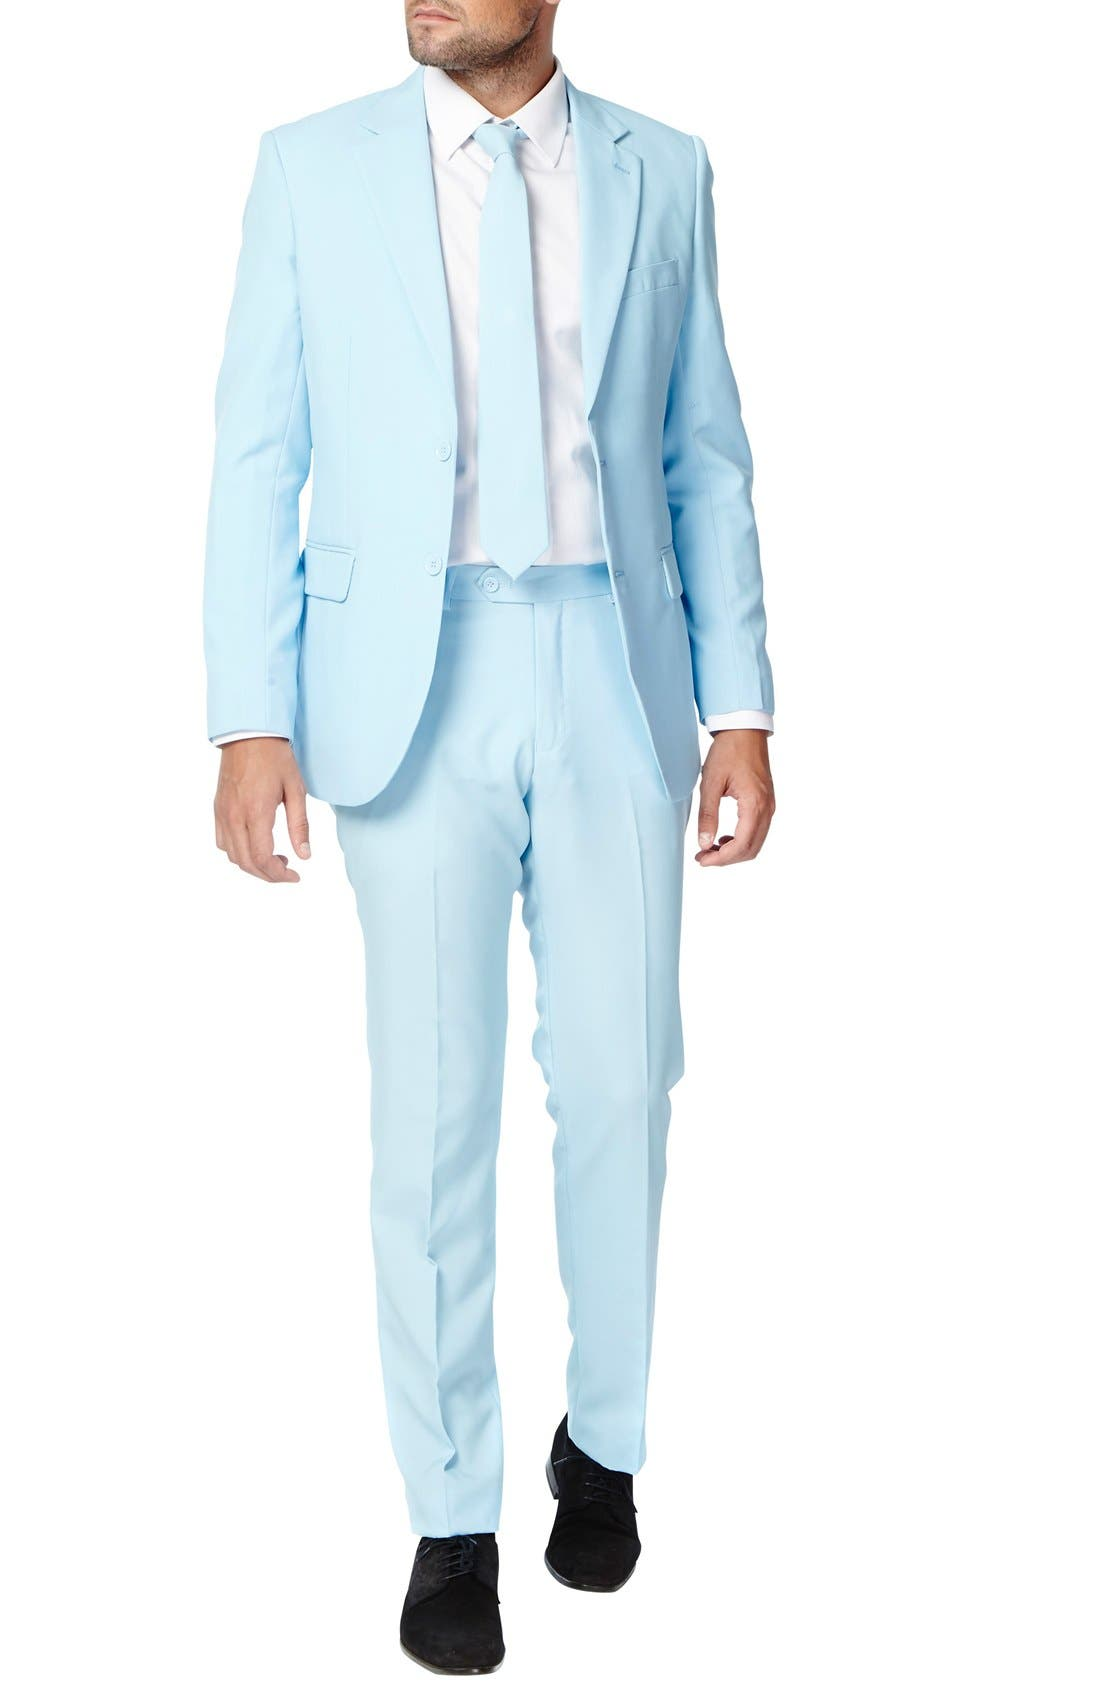 'Cool Blue' Trim Fit Two-Piece Suit with Tie,                         Main,                         color, Blue